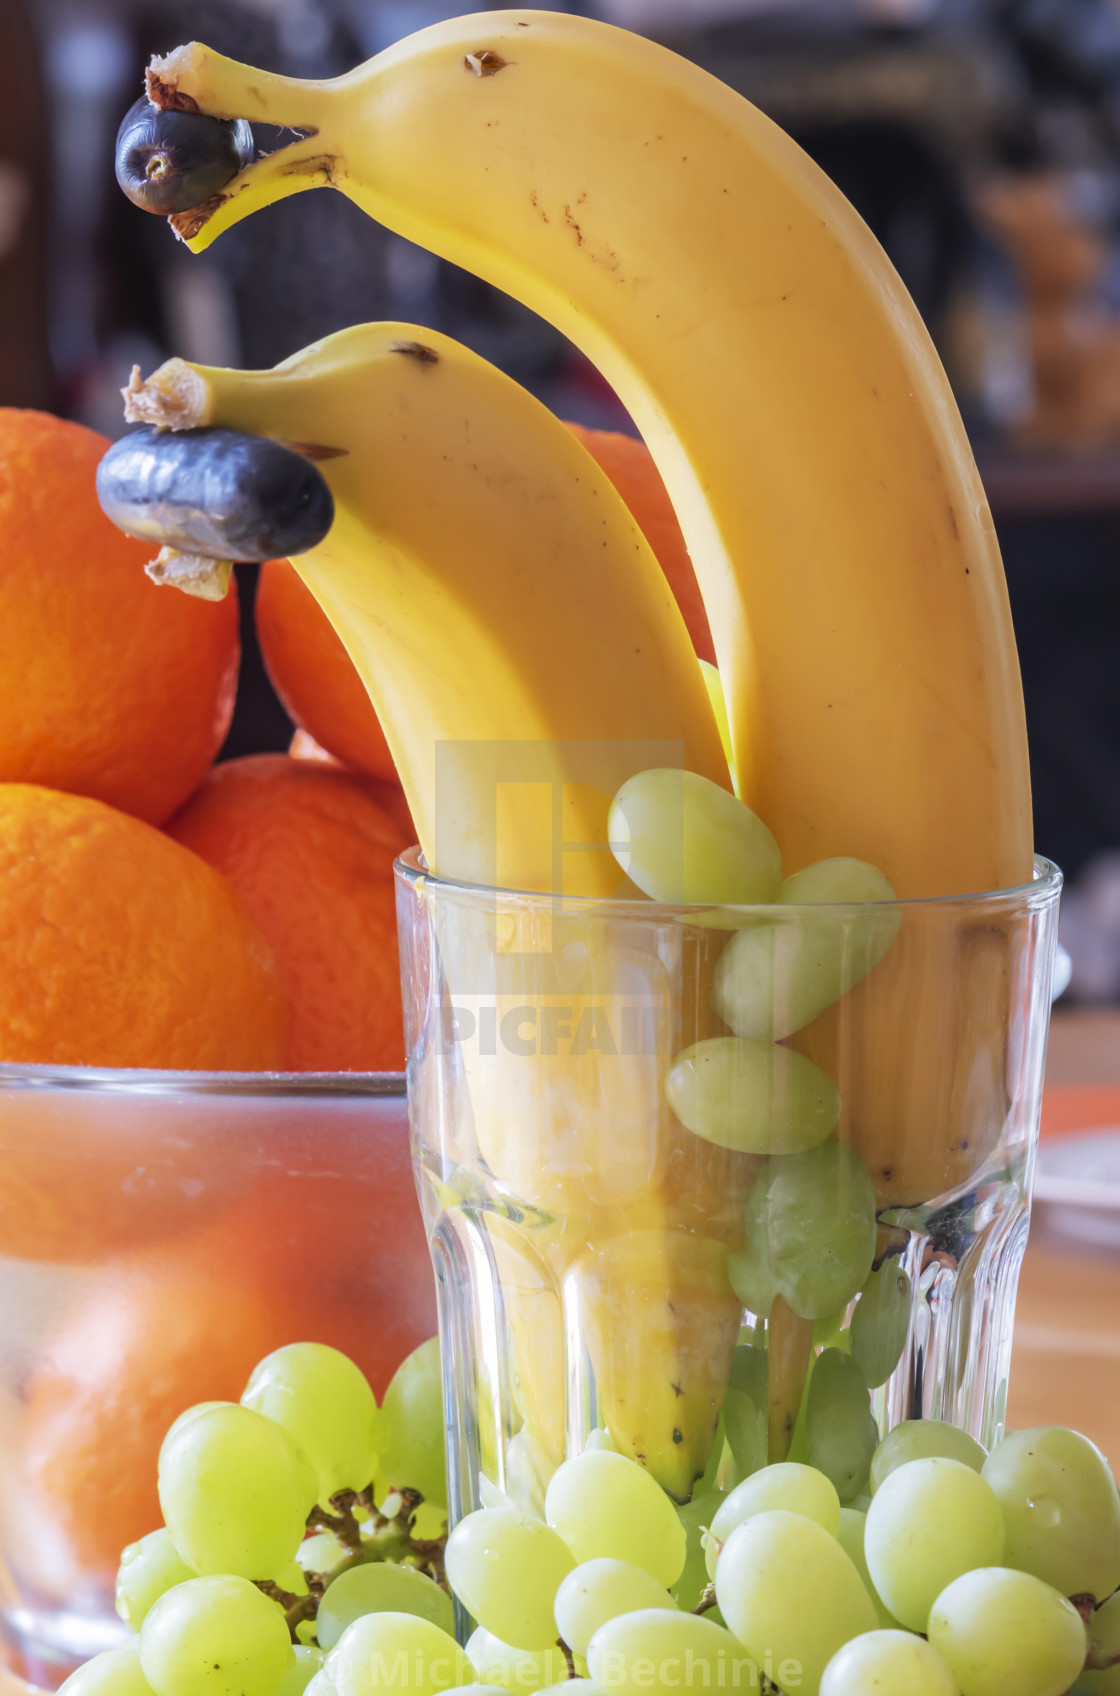 Fun food as a healthy snack with fruits: bananas as dolphins with a ...